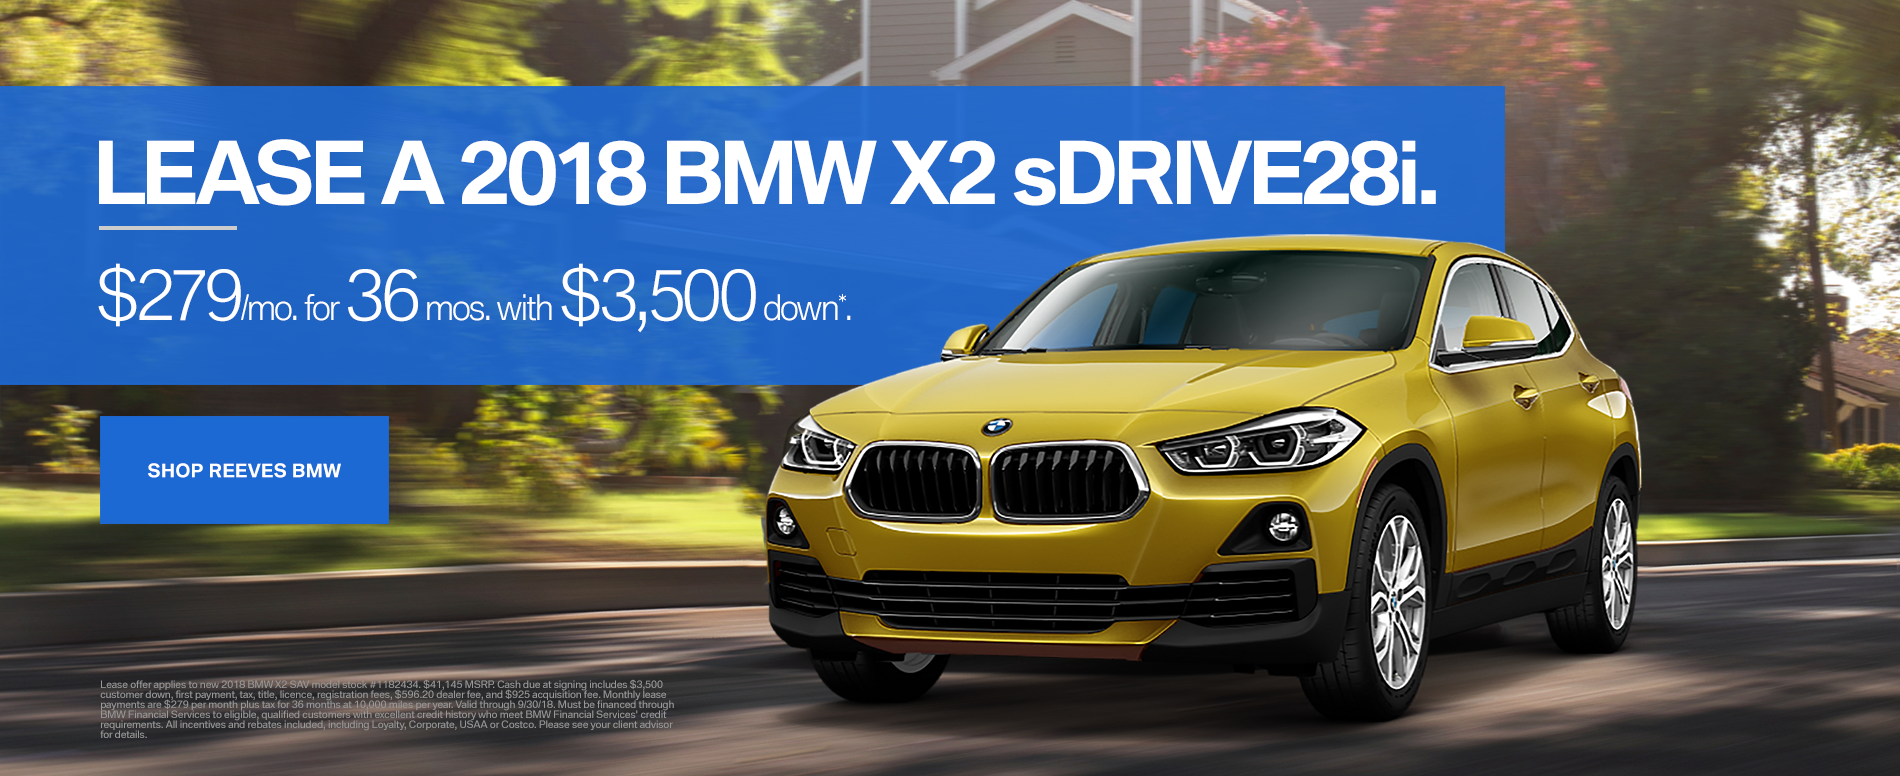 September BMW X2 Lease Offer